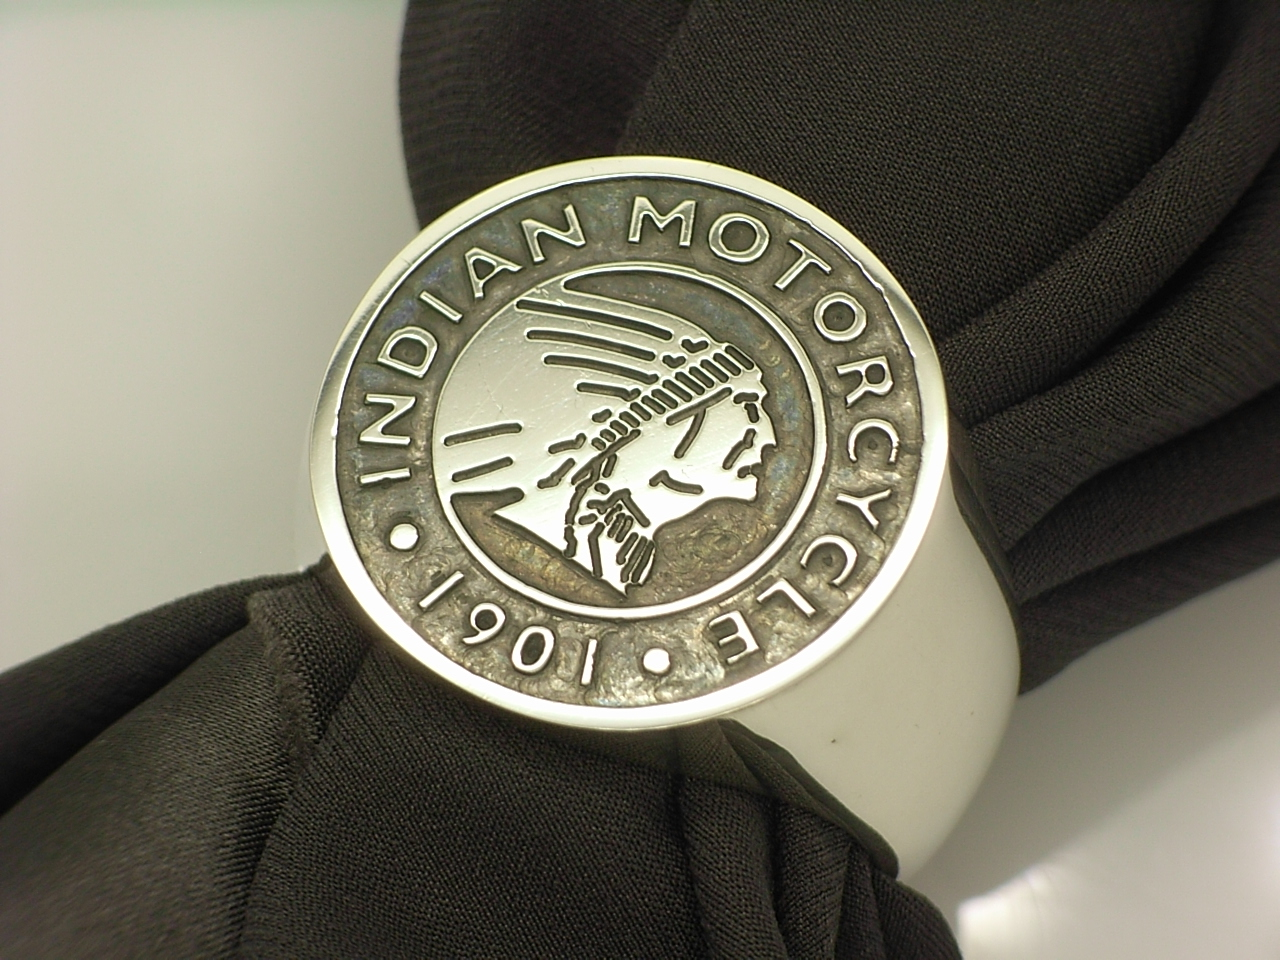 Indiam motorcycle engraved custom ring